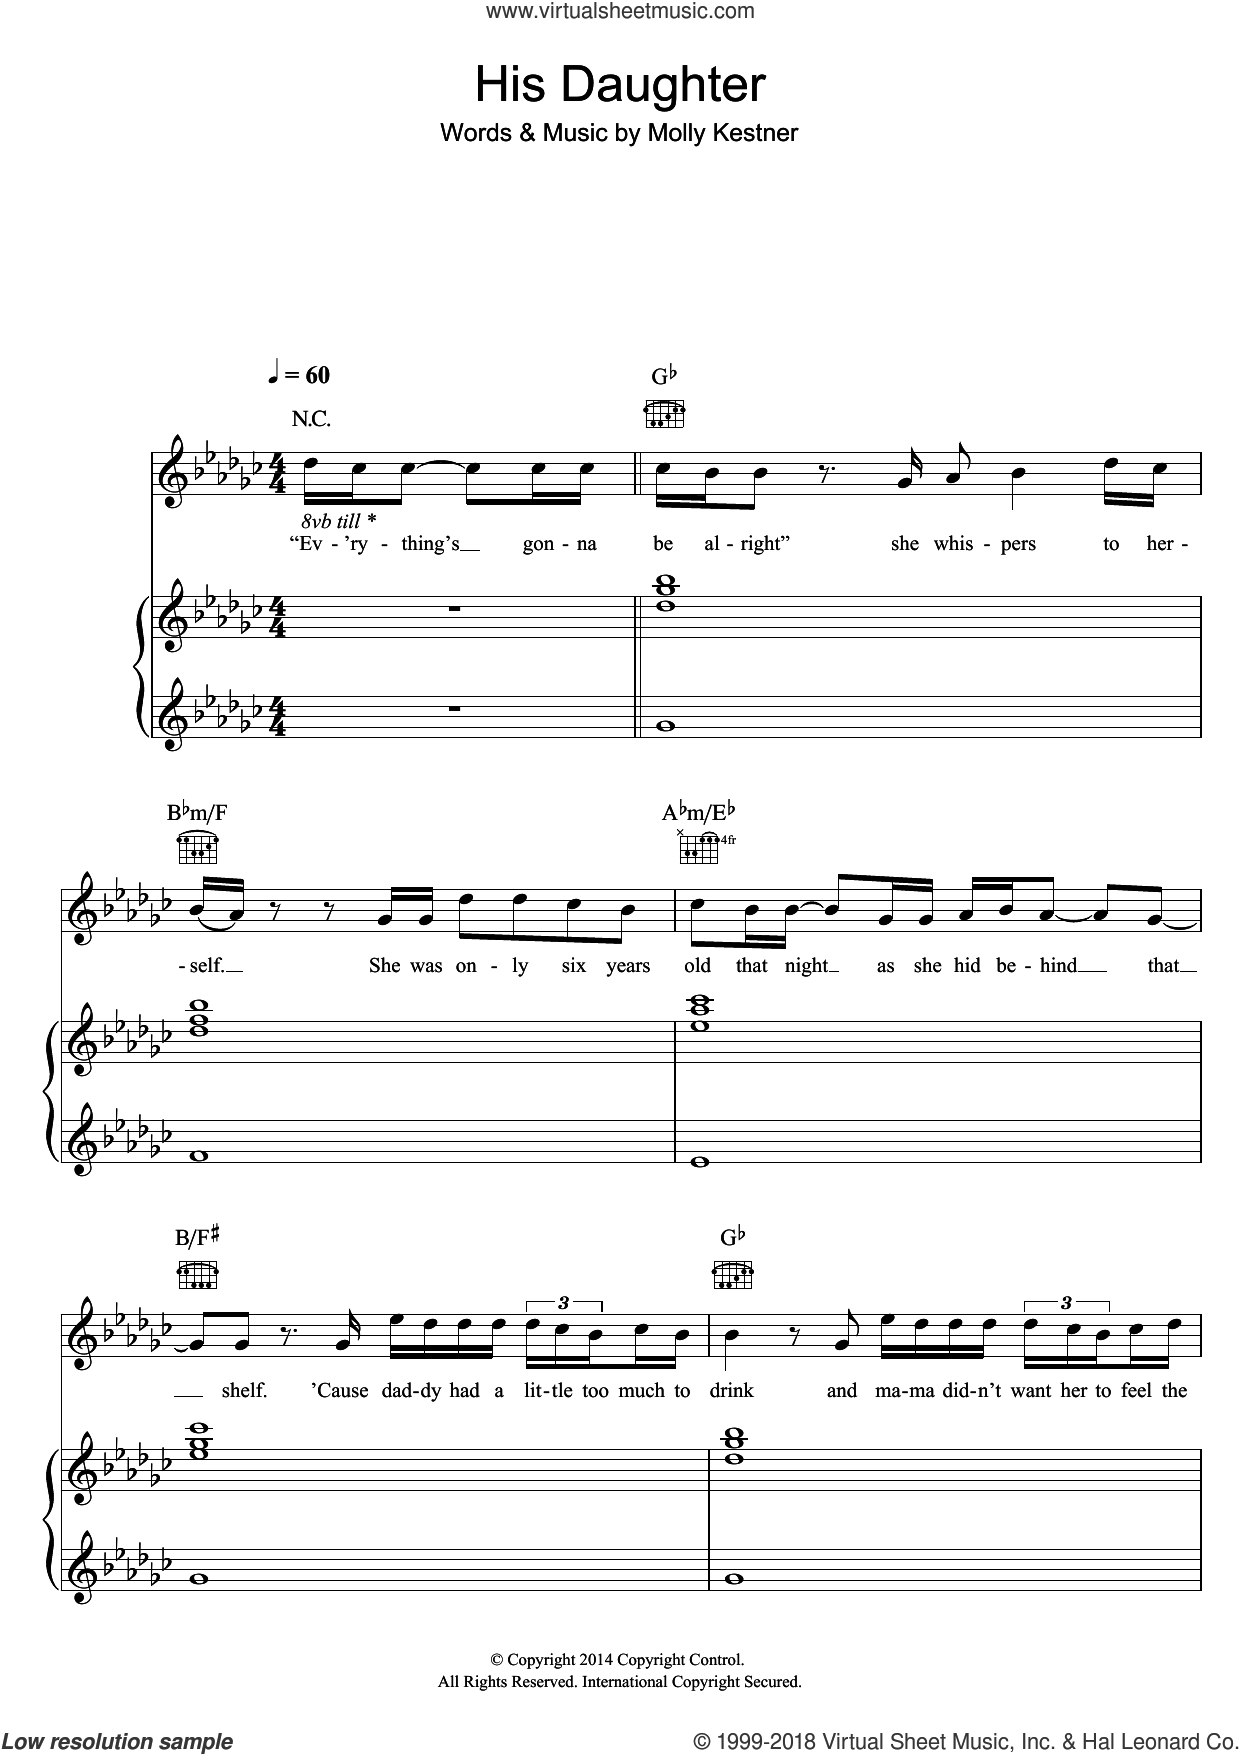 His Daughter sheet music for voice, piano or guitar by Molly Kate Kestner, intermediate skill level